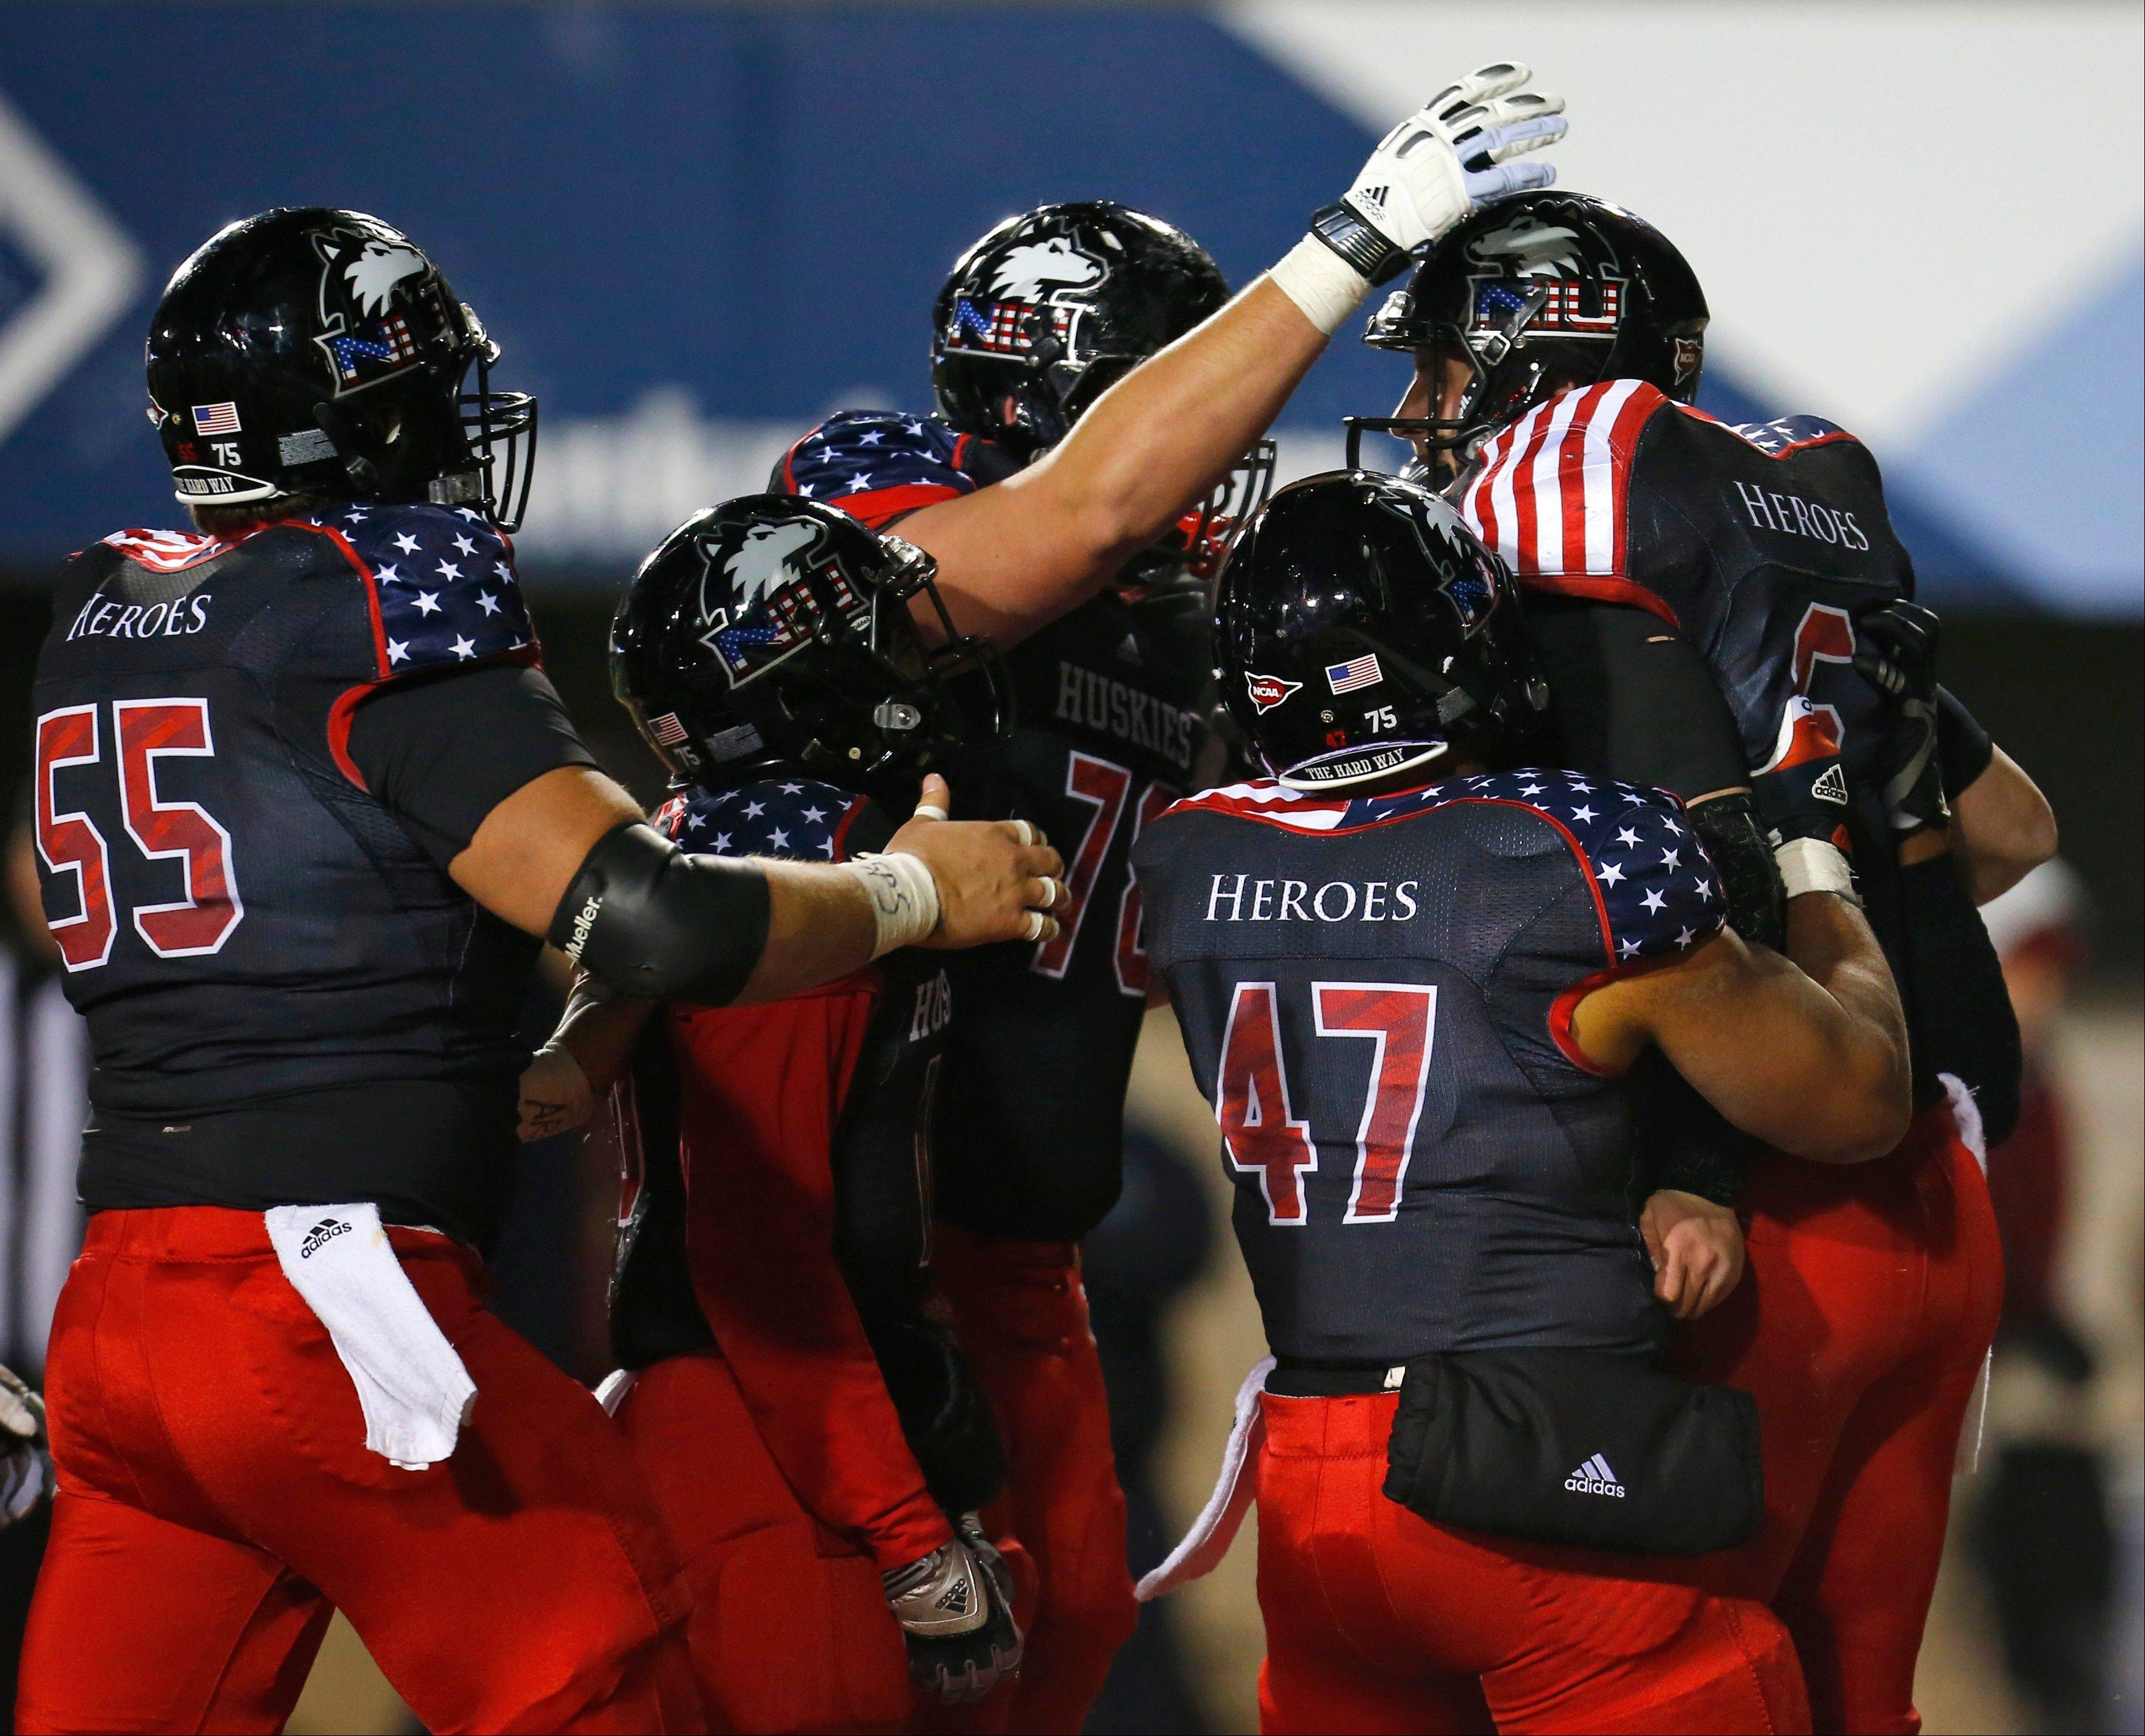 Northern Illinois quarterback Jordan Lynch, right, celebrates with teammates after scoring a touchdown during the second half of an NCAA college football game against Ball State on Wednesday, Nov. 13, 2013, in DeKalb, Ill. Northern Illinois won 48-27.